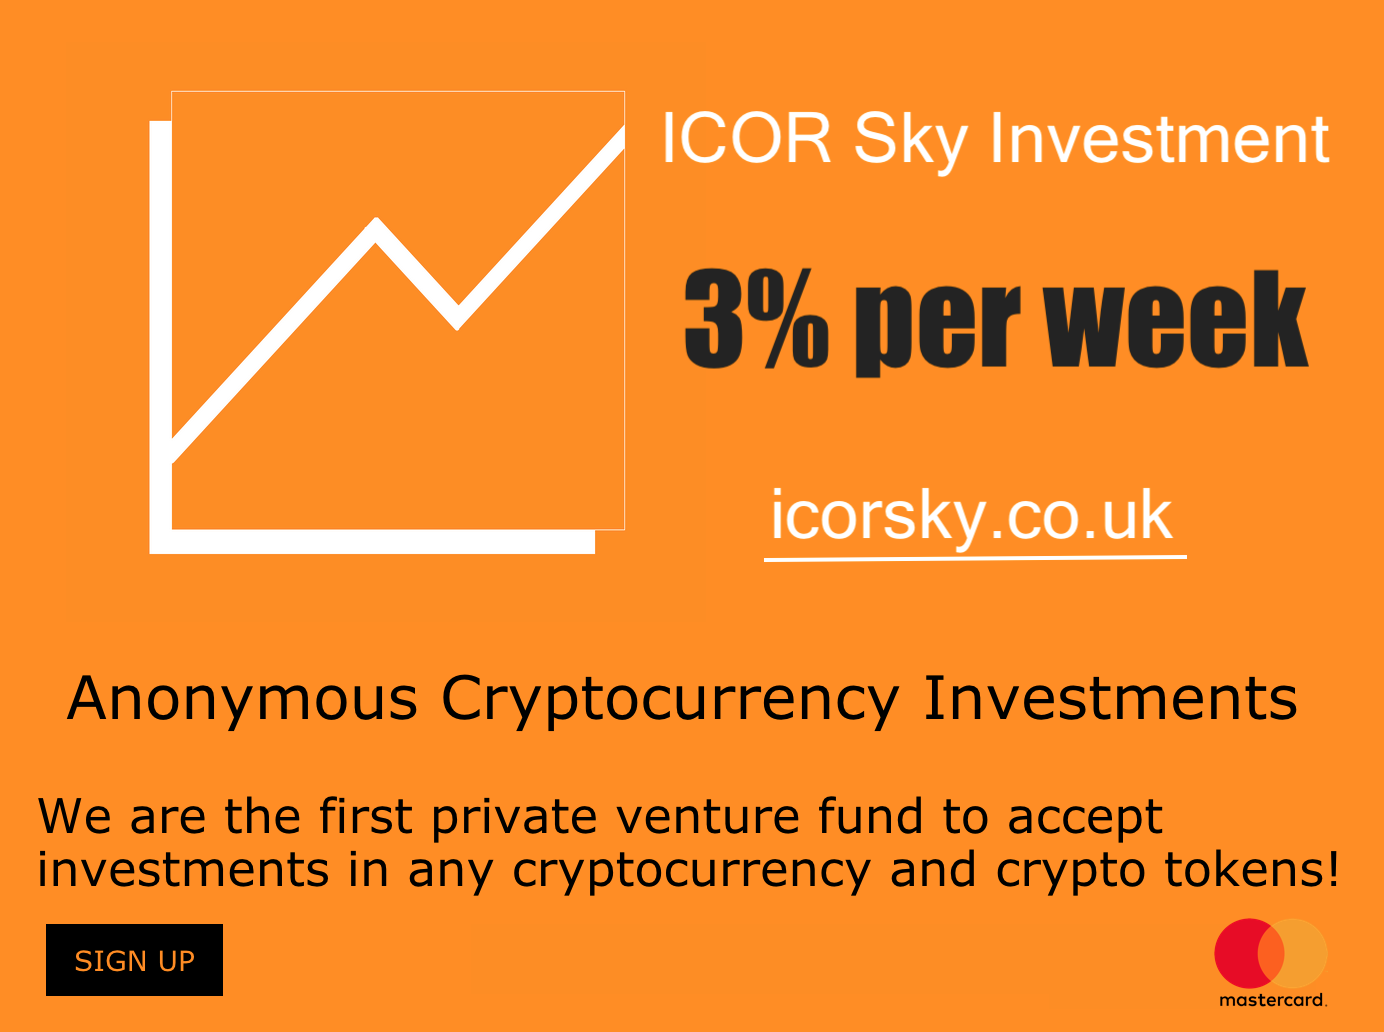 ICOR Sky Investment